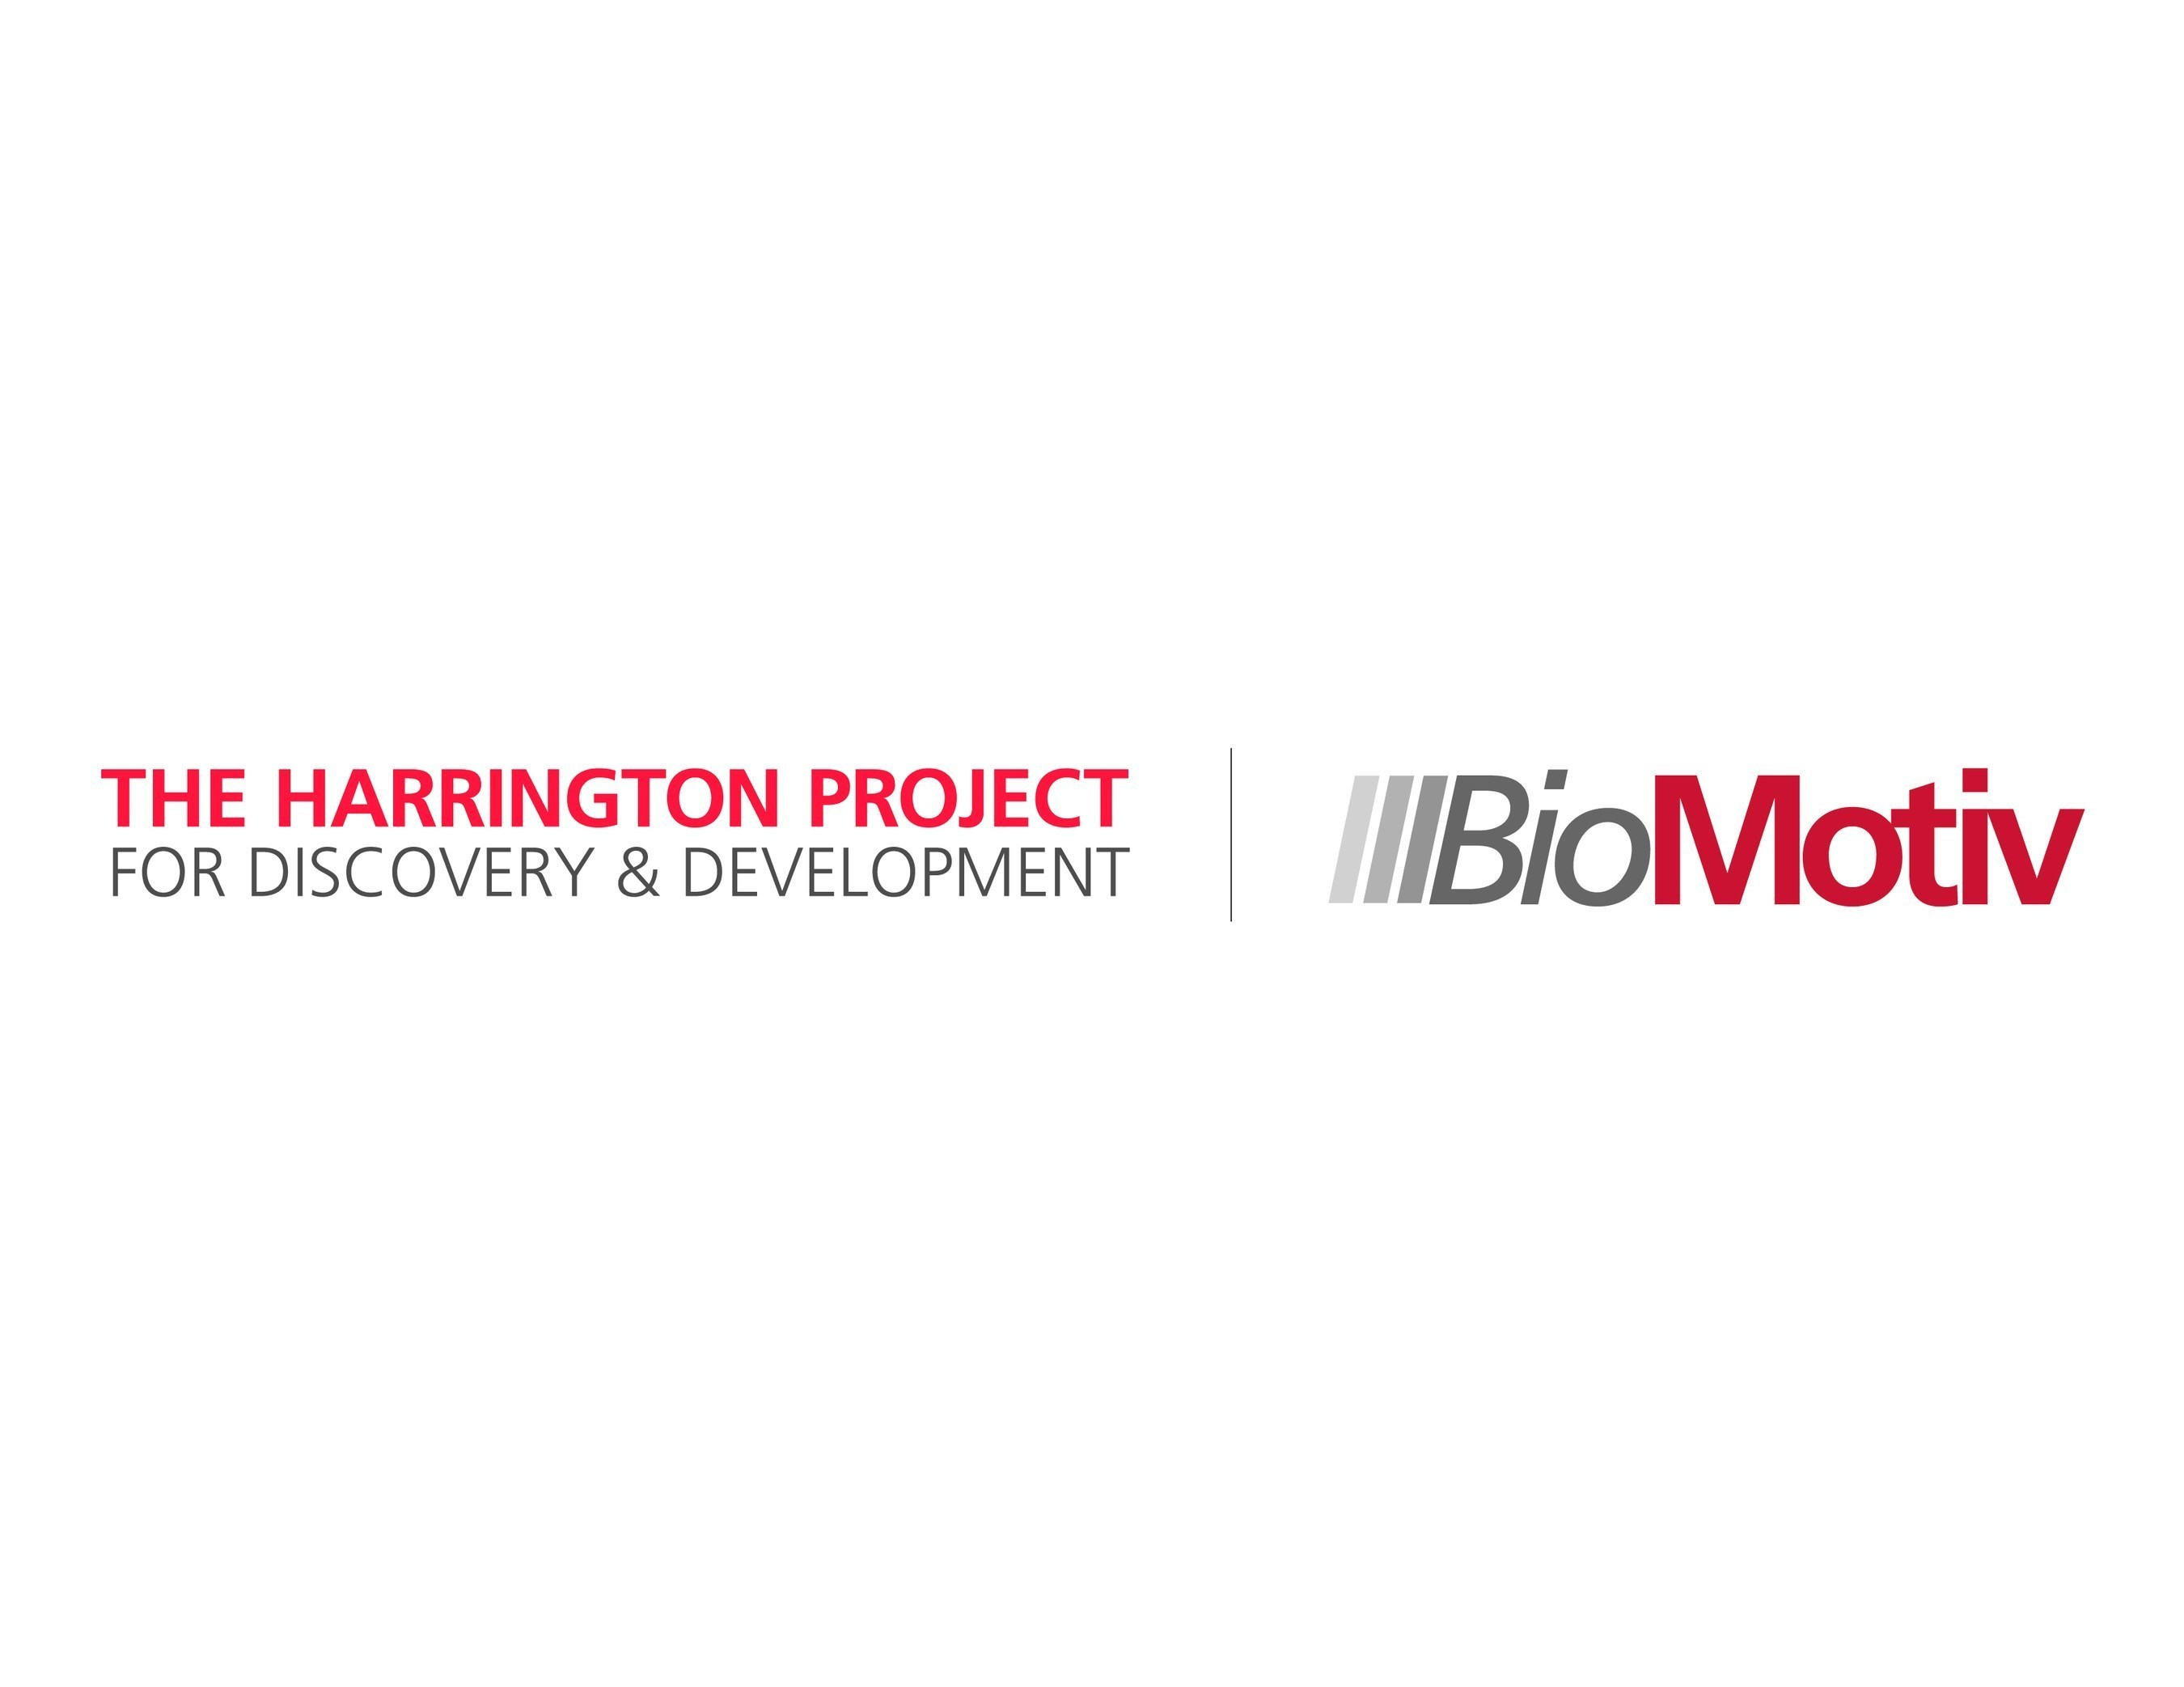 THE HARRINGTON PROJECT FOR DISCOVERY & DEVELOPMENT  | BioMotiv